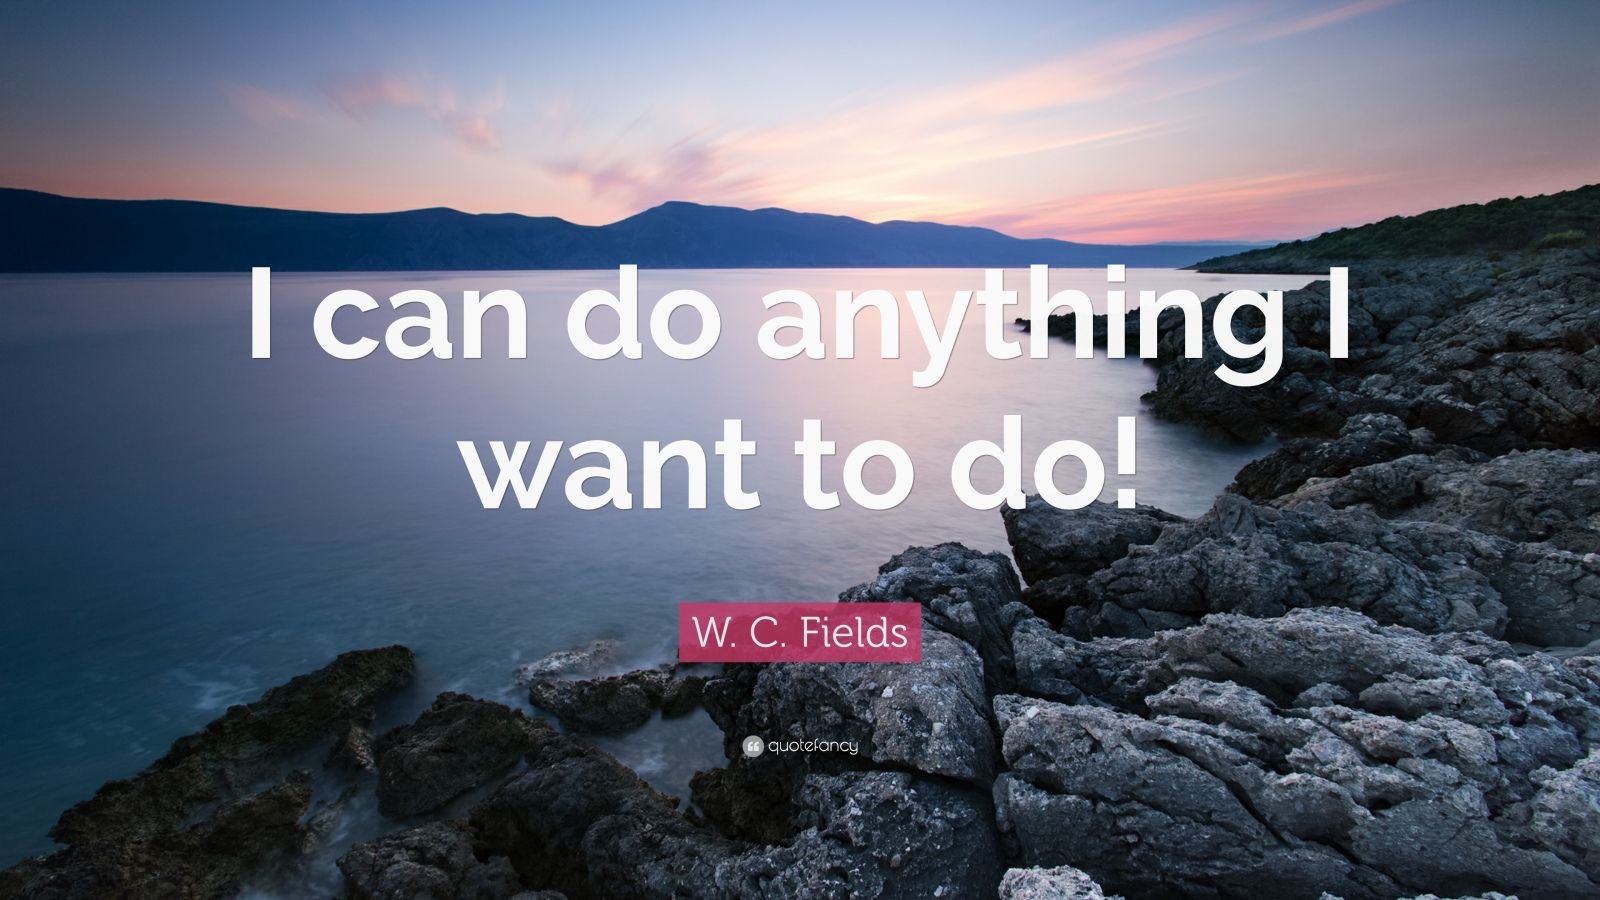 """W. C. Fields Quote: """"I can do anything I want to do!"""""""